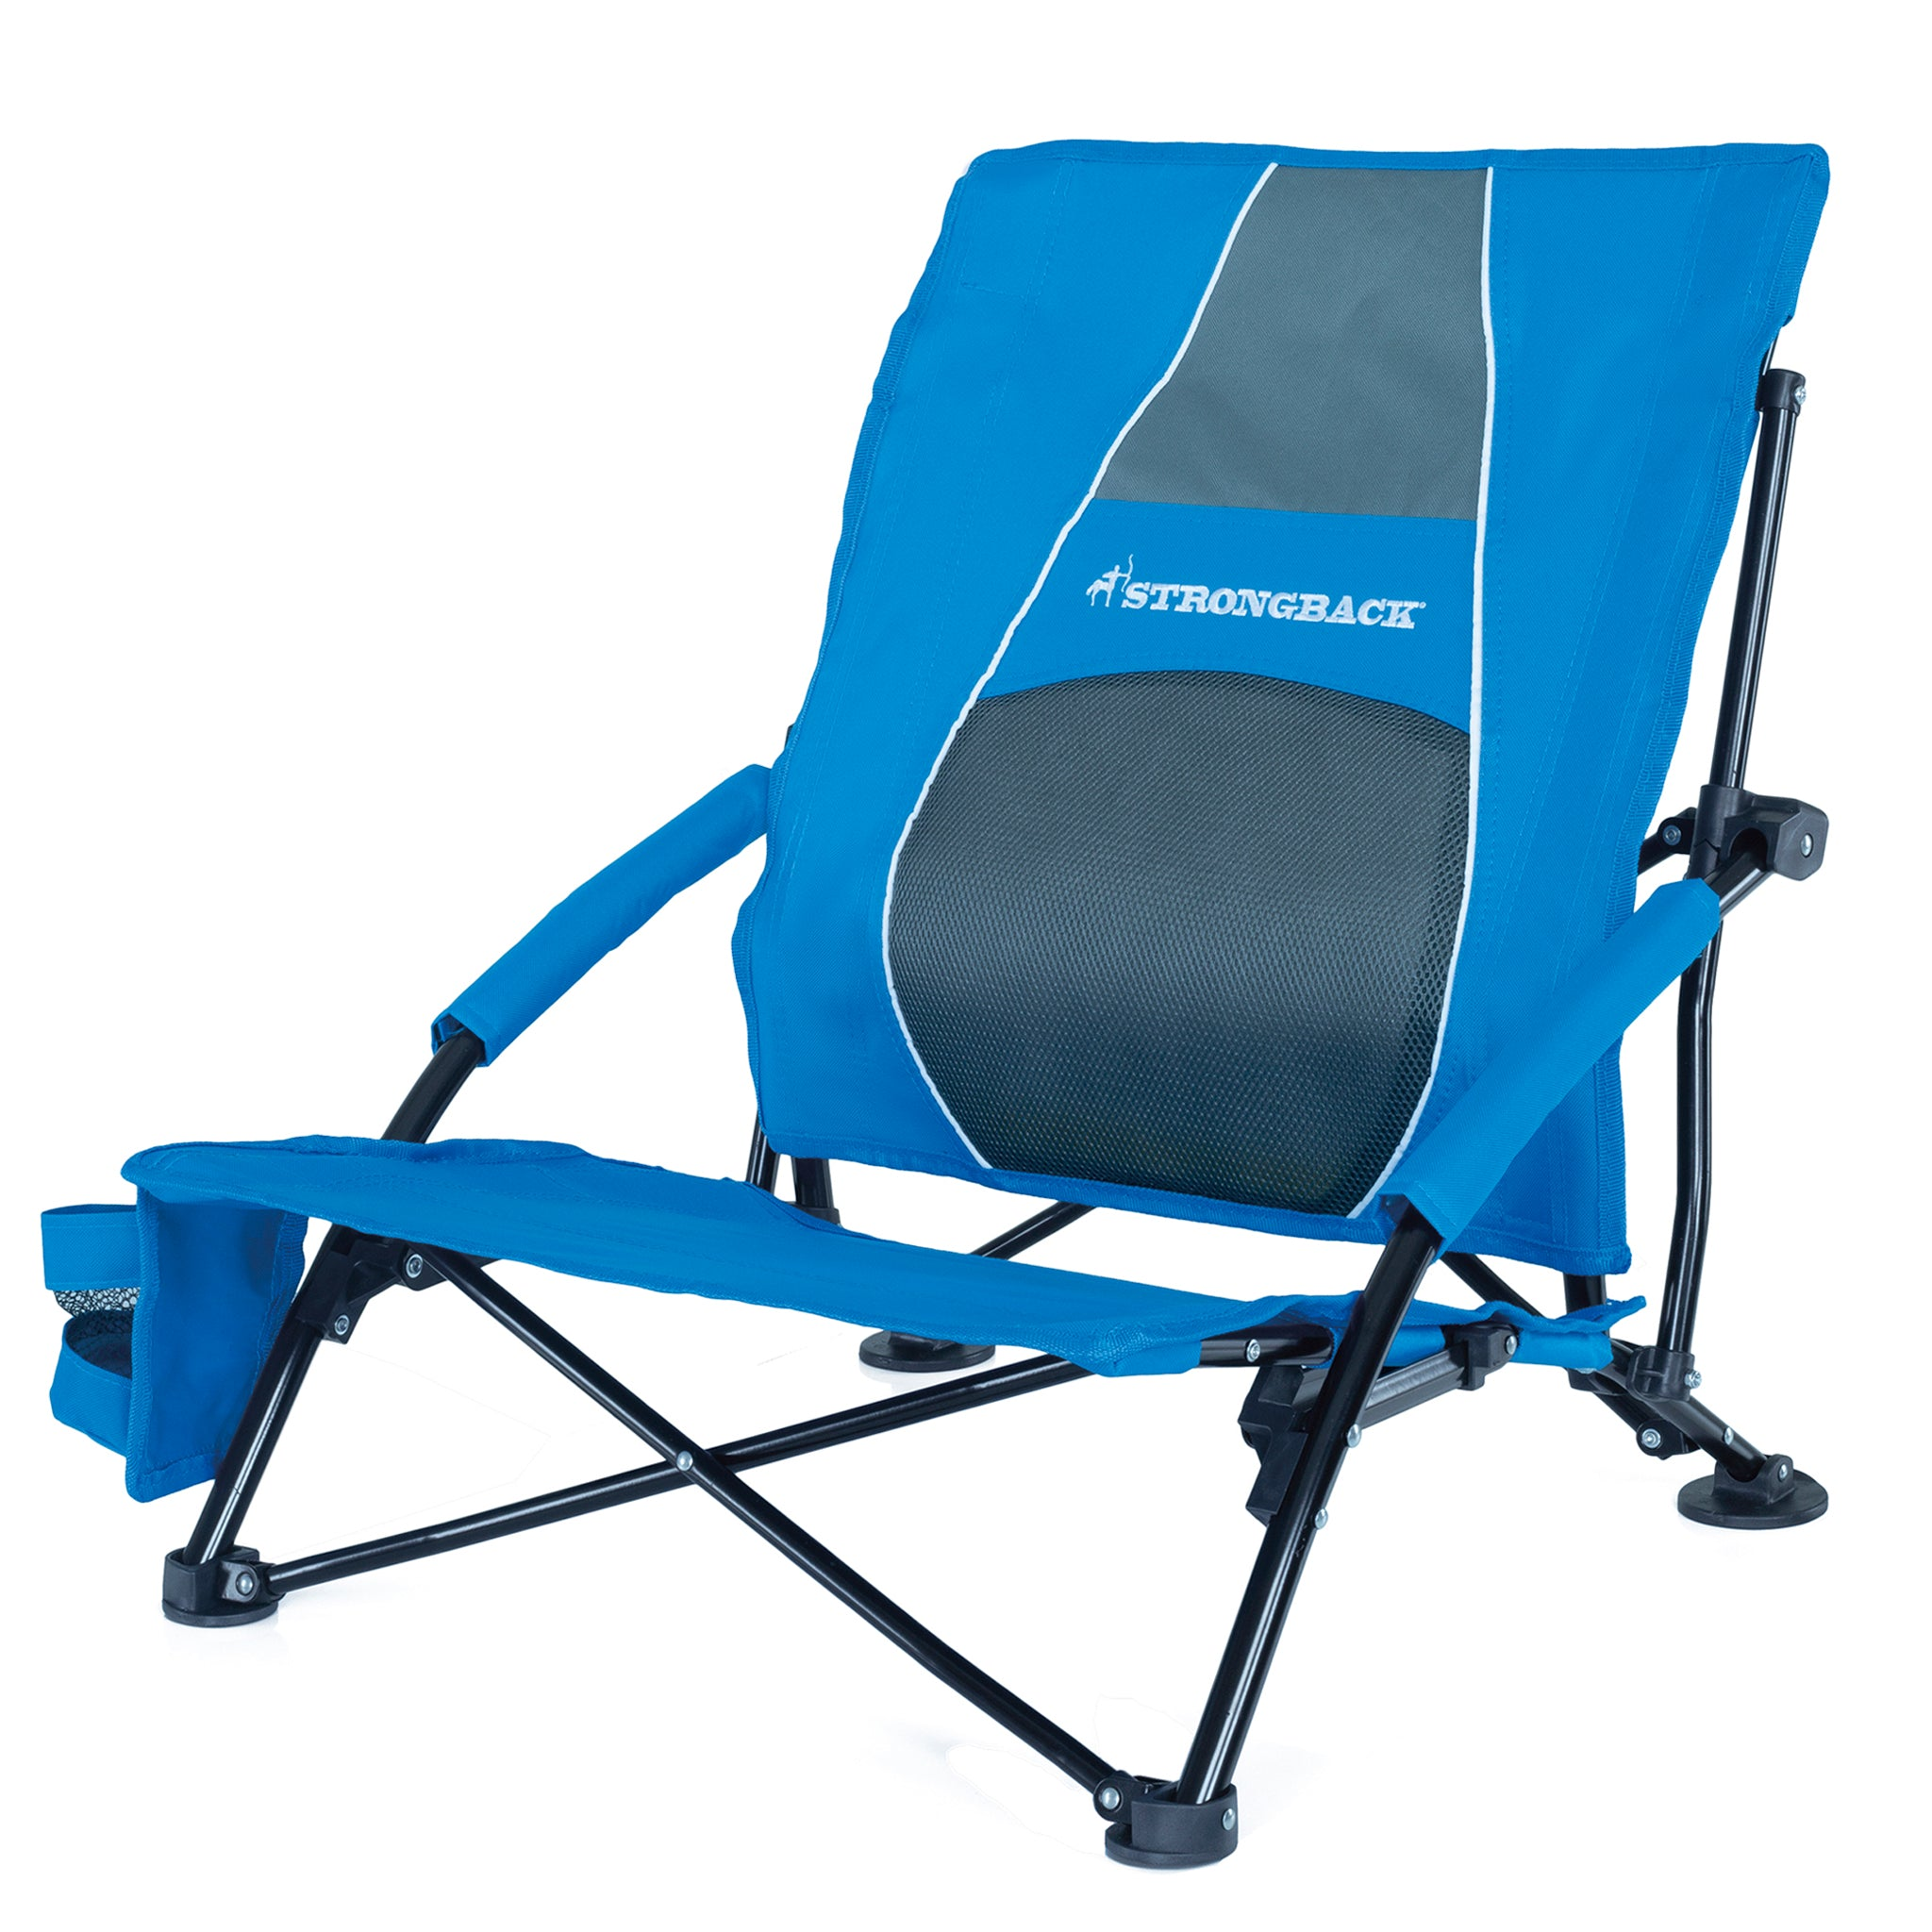 Strongback Low Gravity - The Best Beach Chair - Strongbackchair